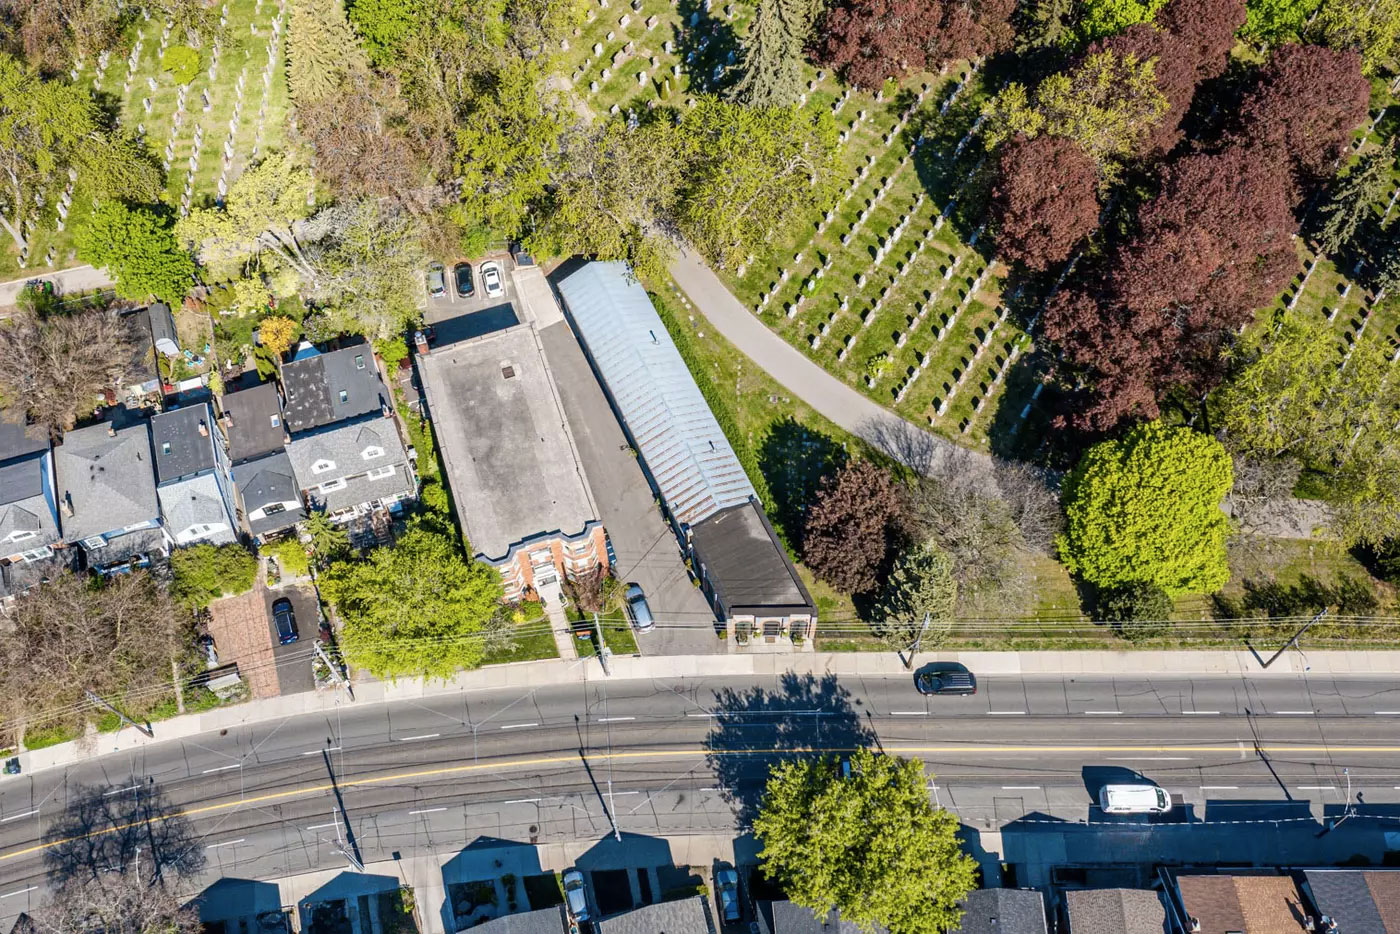 The plot extends far back, maximising the curve of Woodbine Avenue